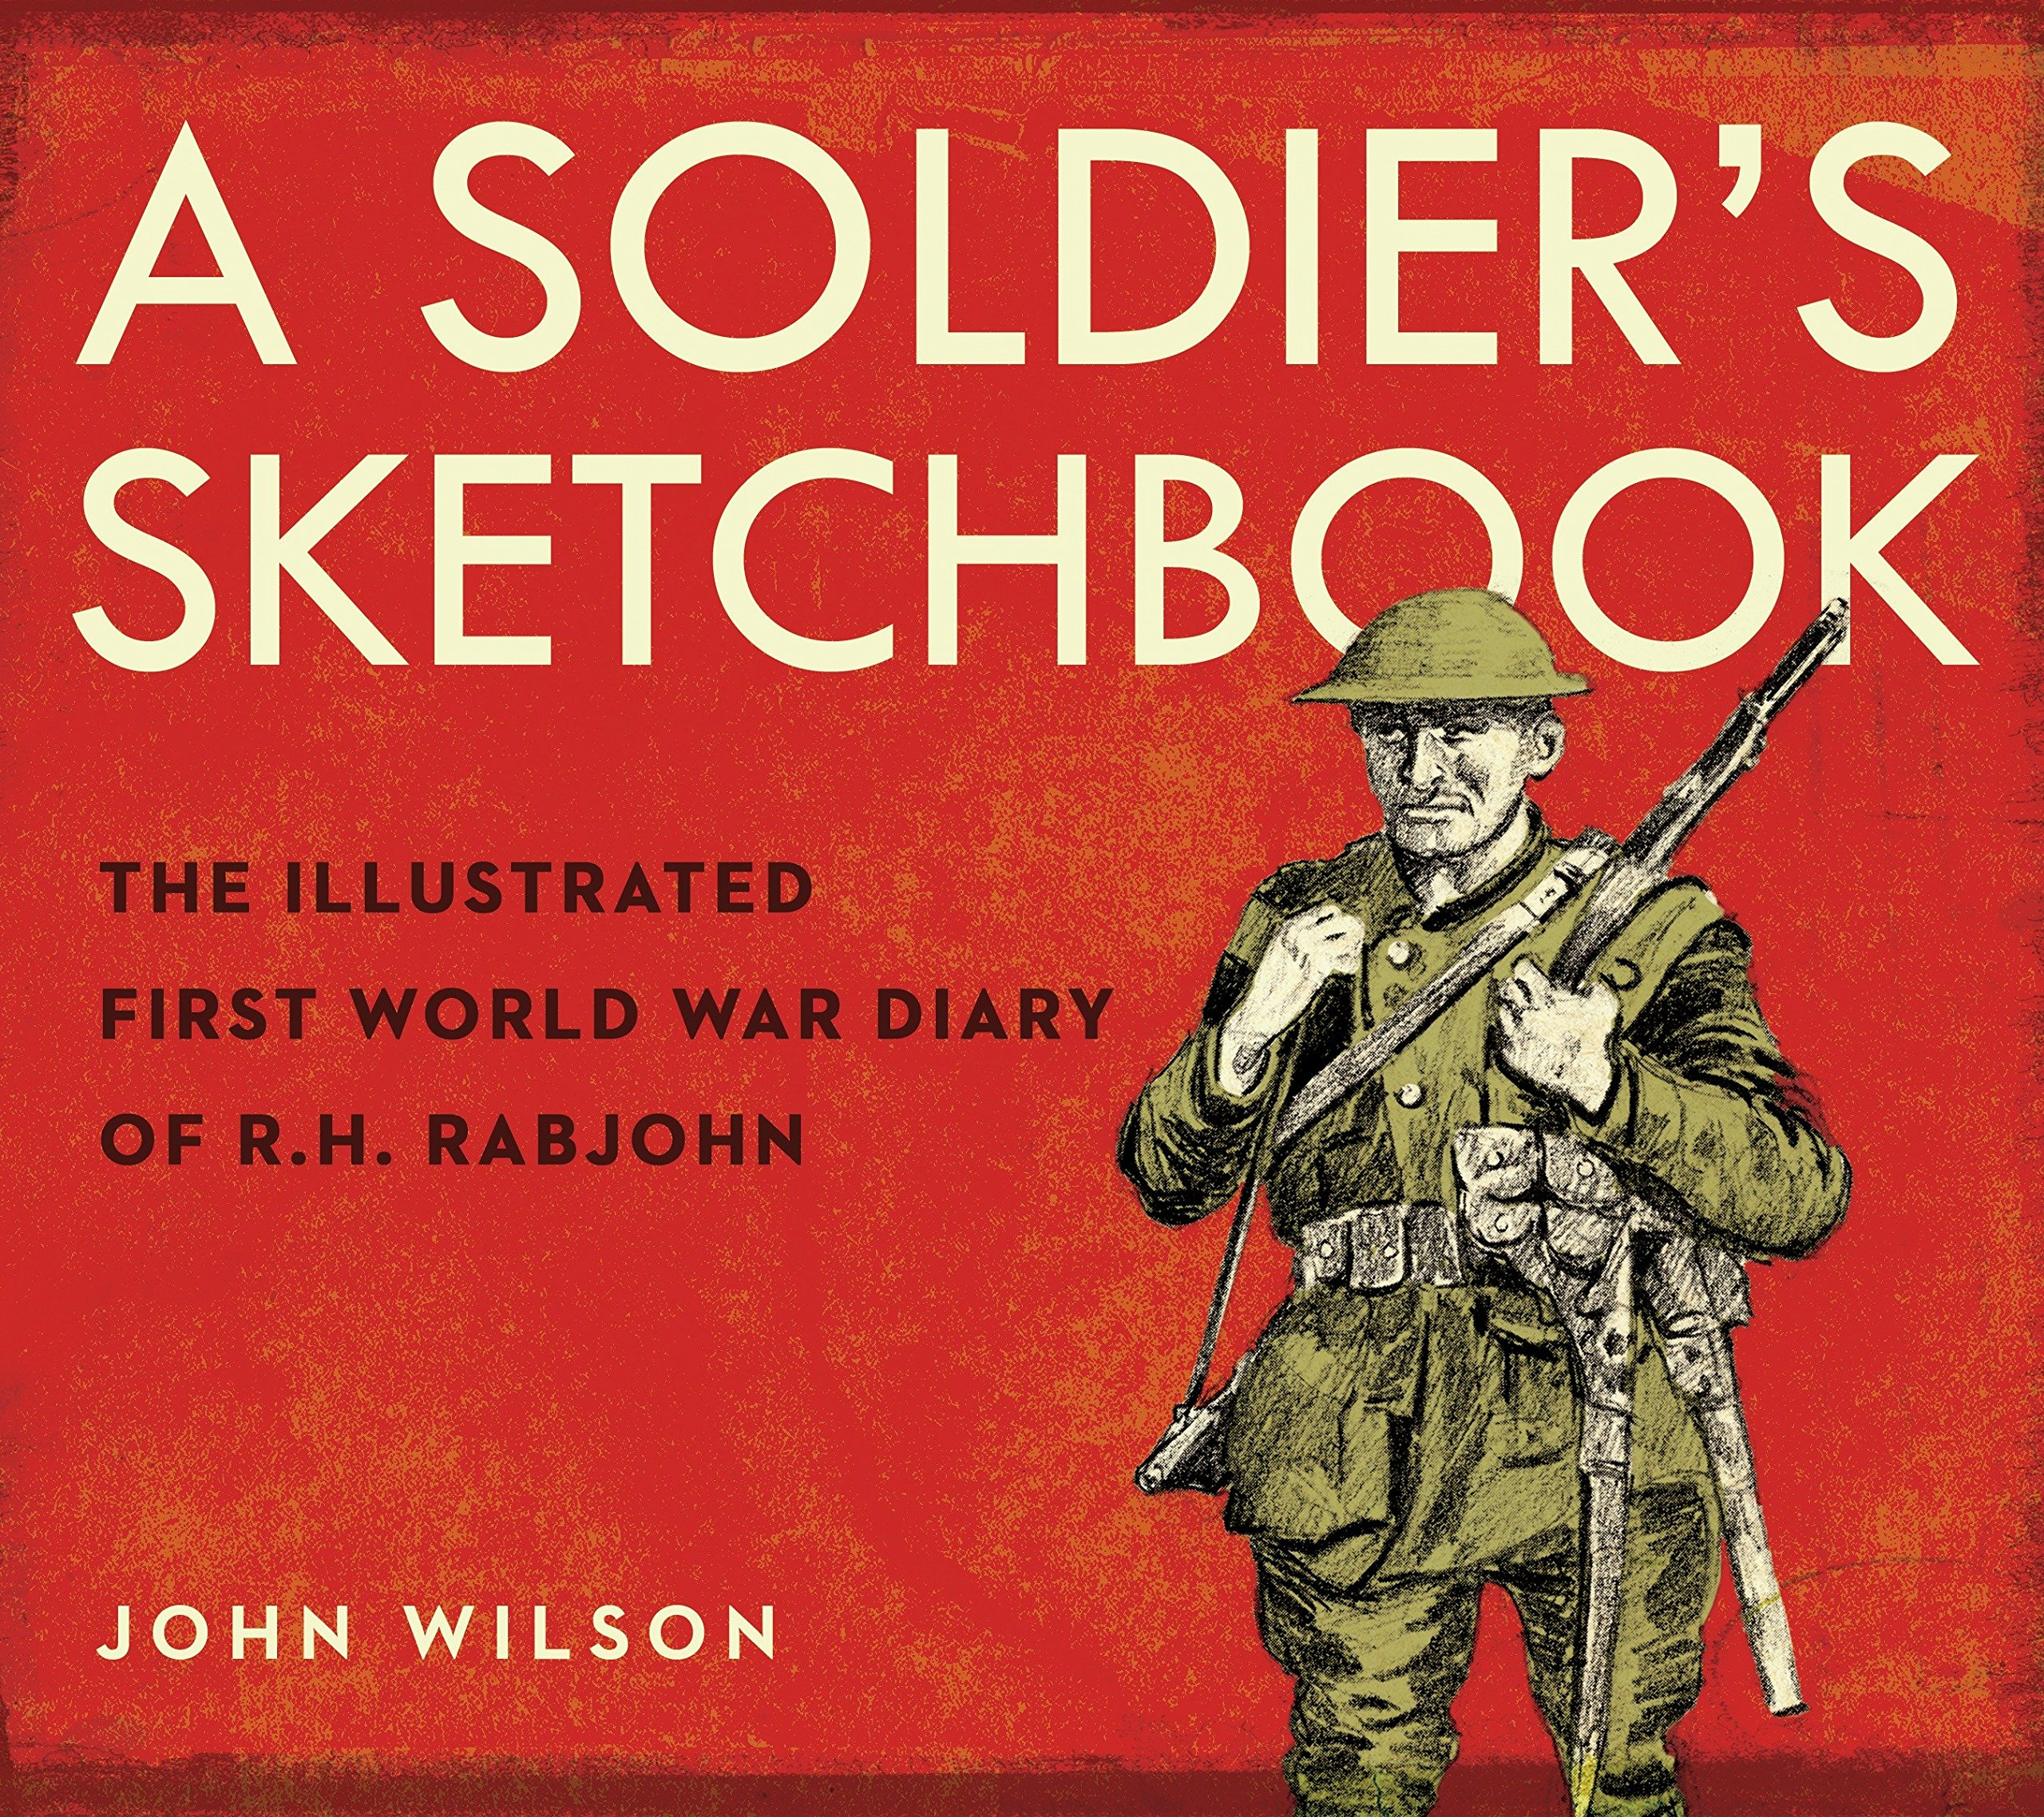 Download A Soldier's Sketchbook: The Illustrated First World War Diary of R.H. Rabjohn ebook